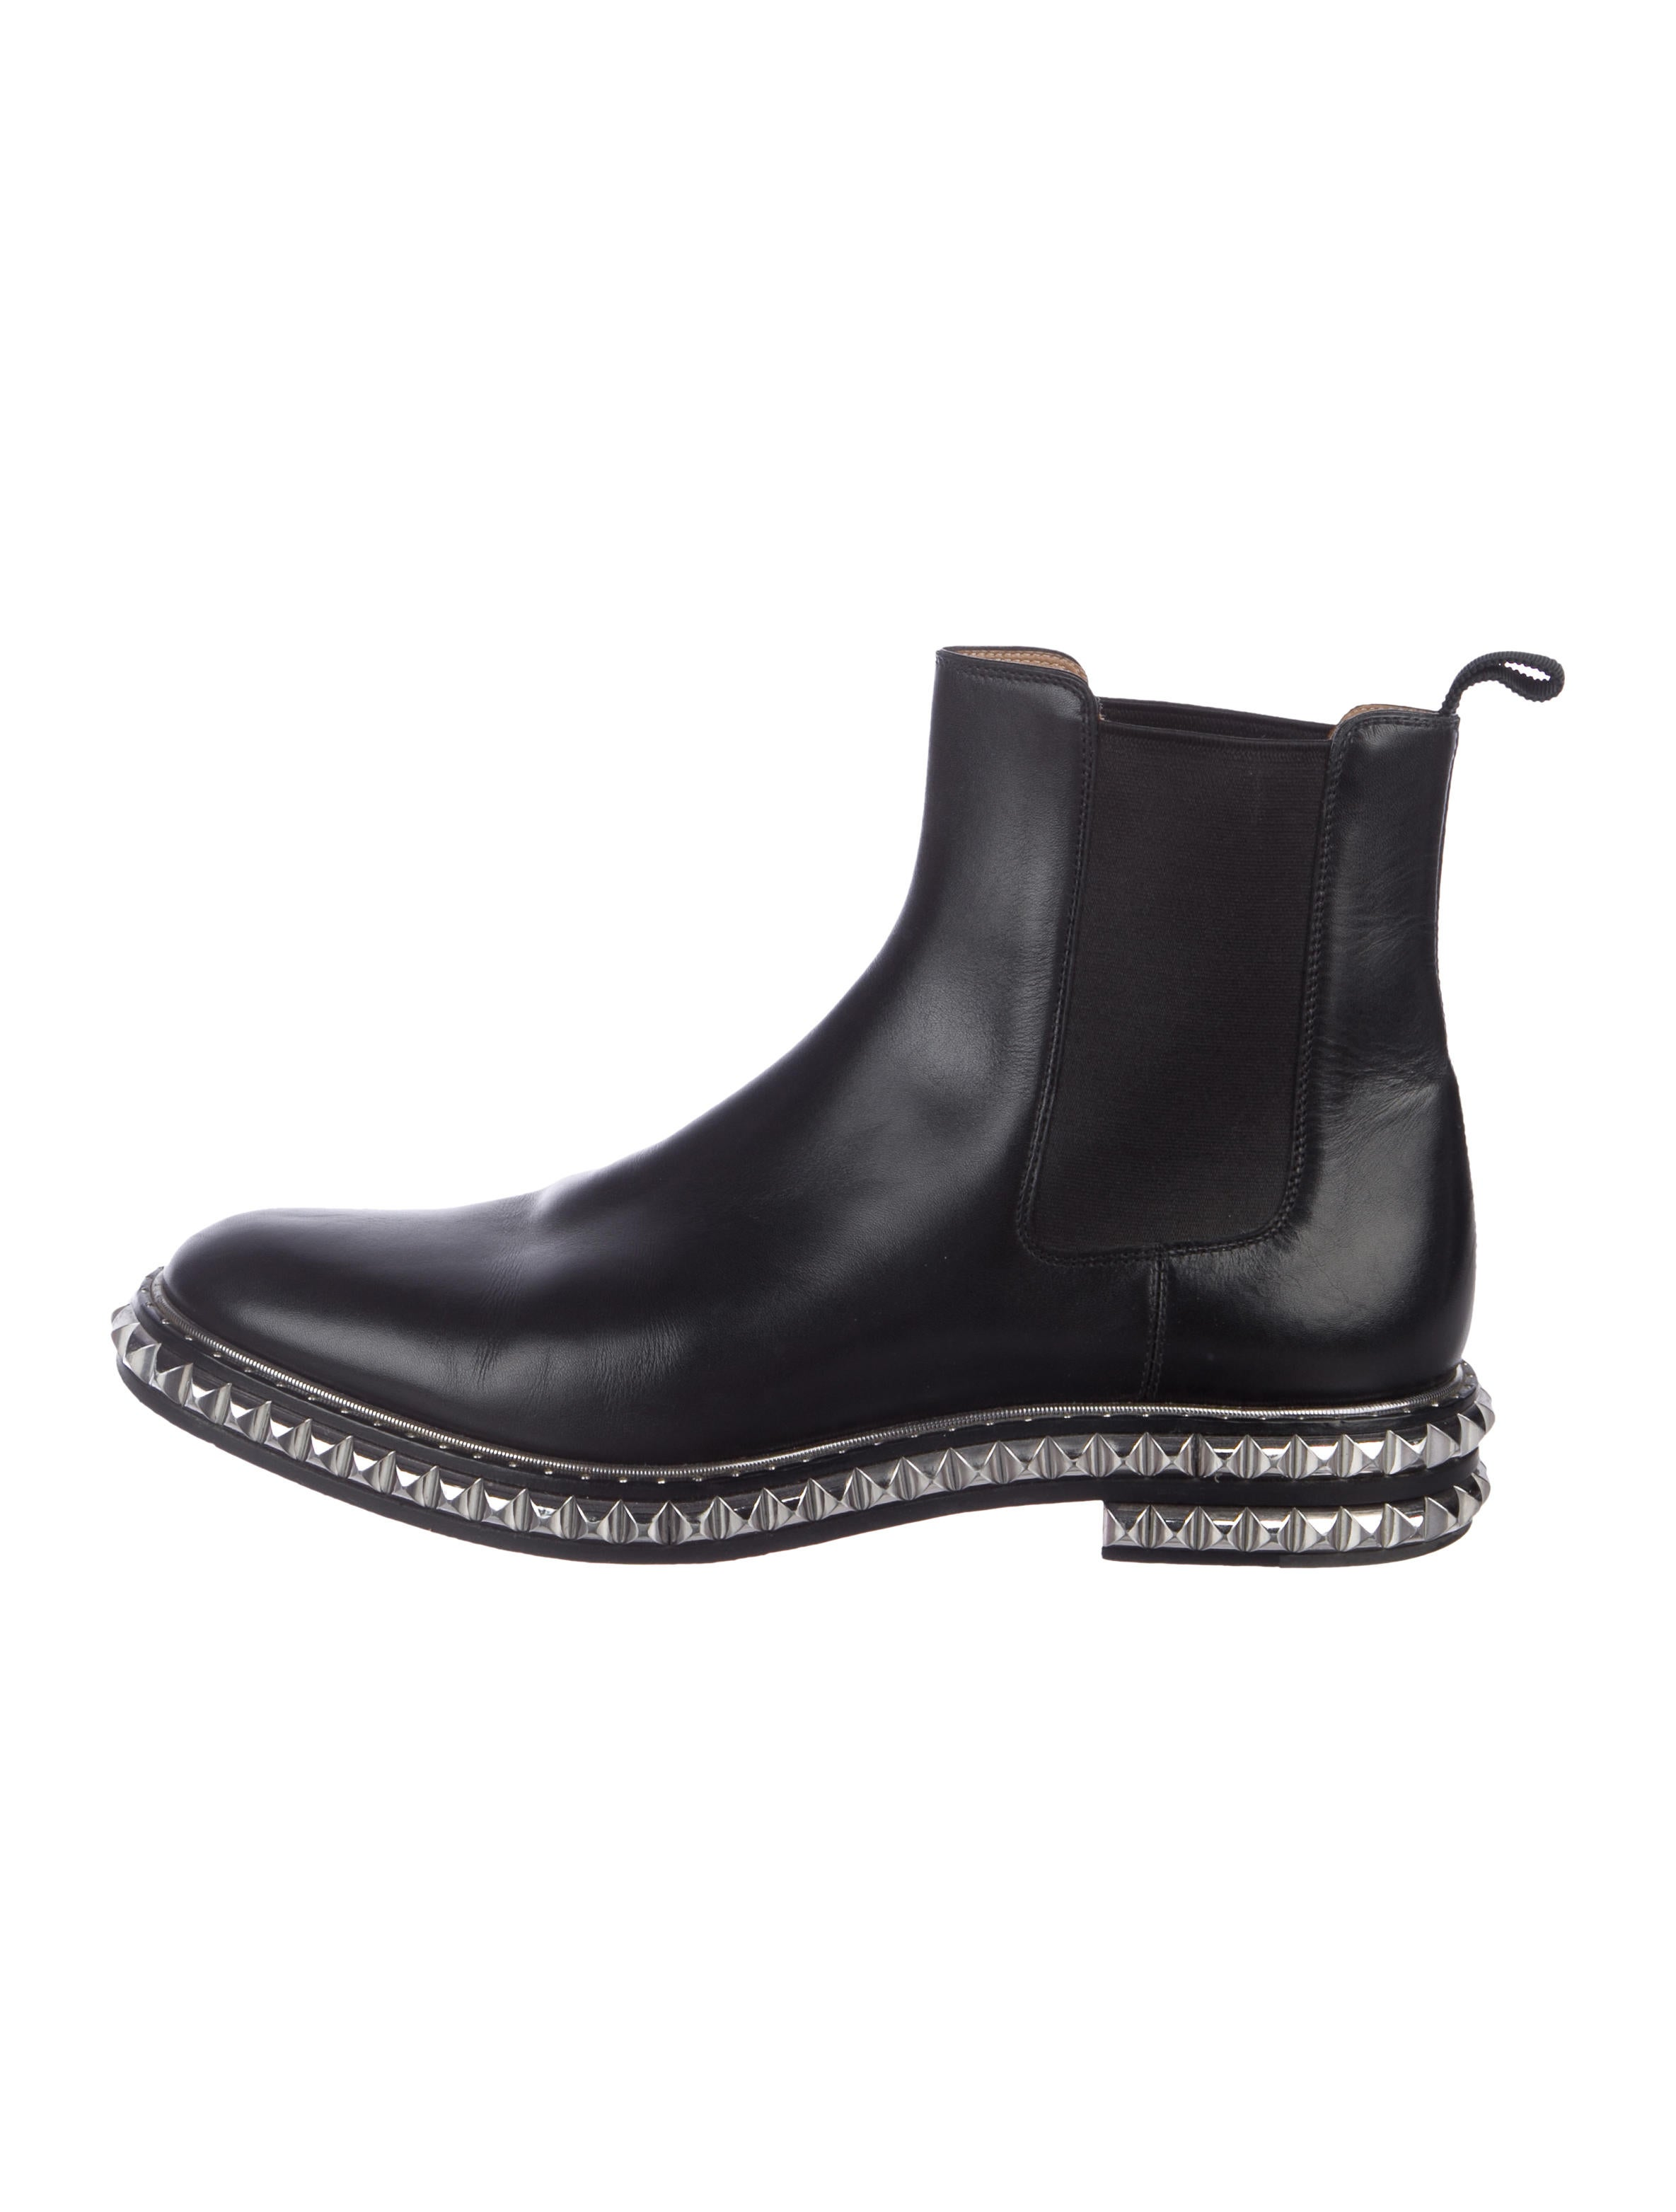 ac5c9c913b1c Christian Louboutin Leather Chelsea Boots - Shoes - CHT121633